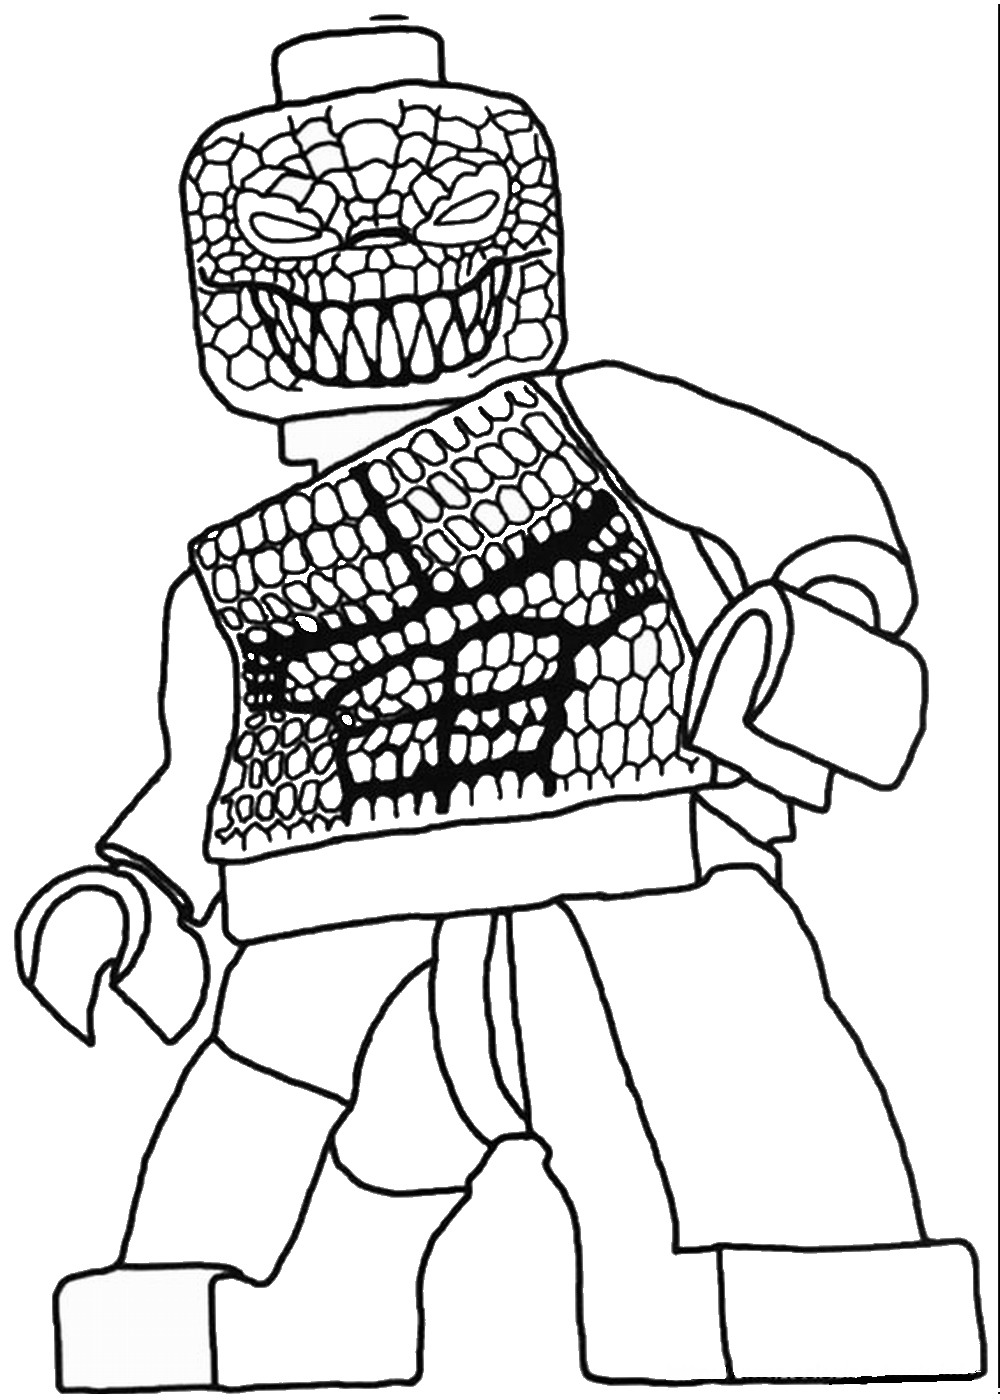 lego coloring sheets printables the lego batman movie coloring pages sheets printables lego coloring